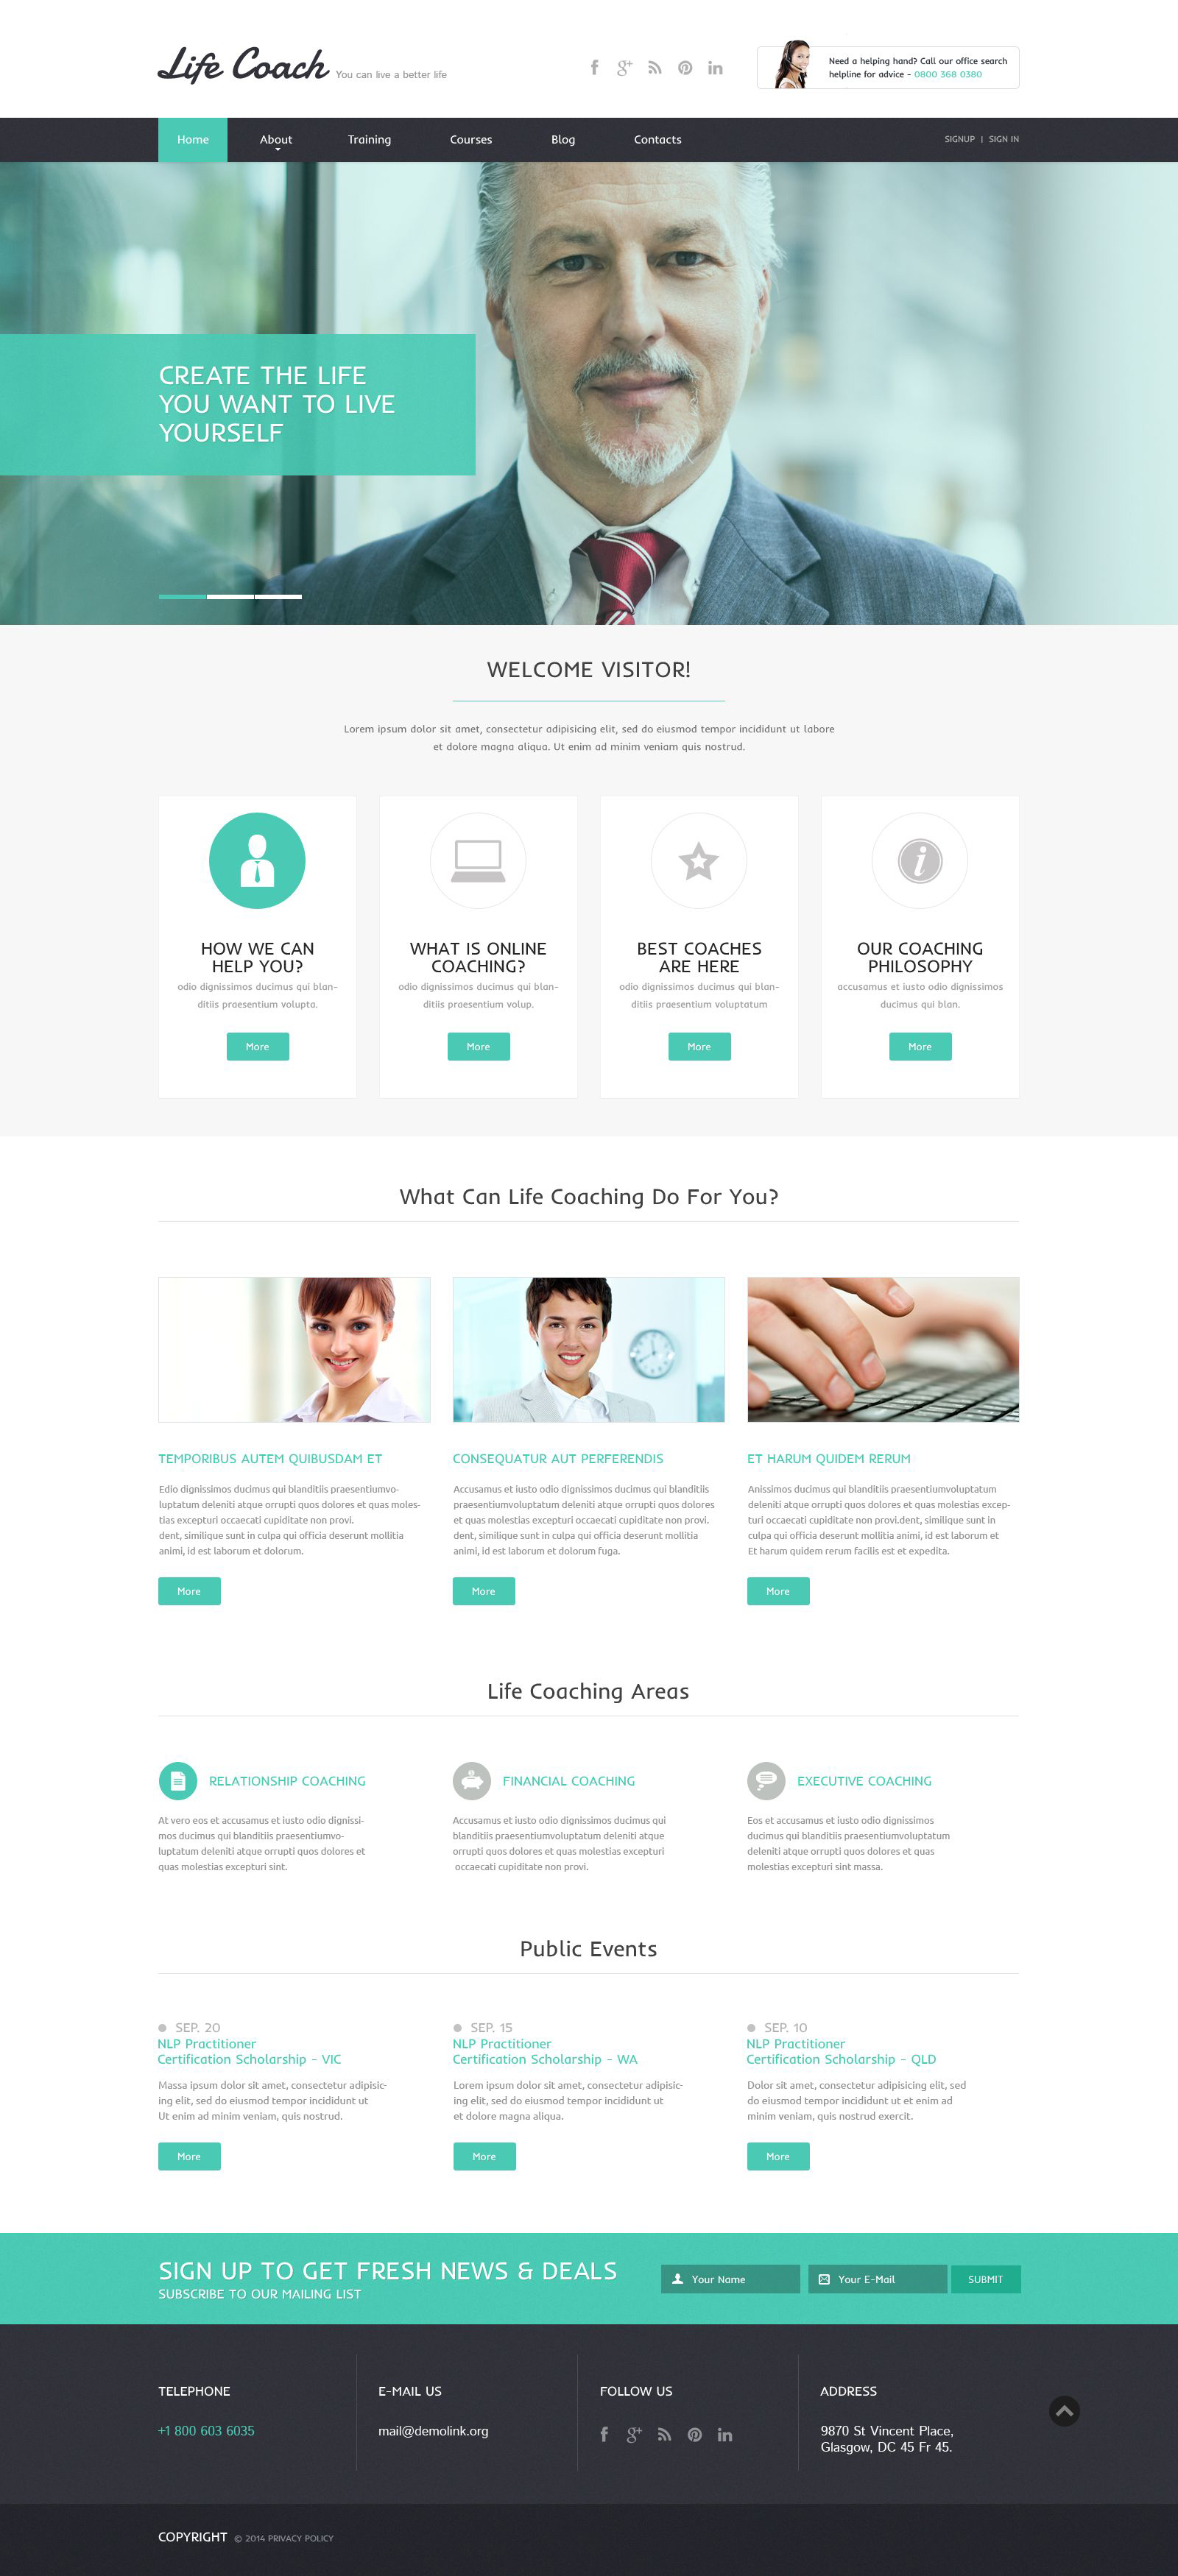 Coaching Website Templates. 15 best consulting coaching website ...